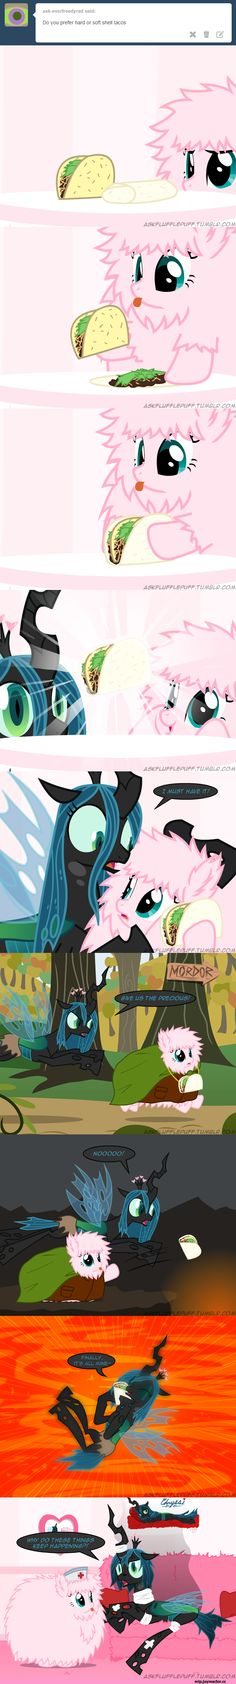 Queen Chrysalis,Fluffle Puff